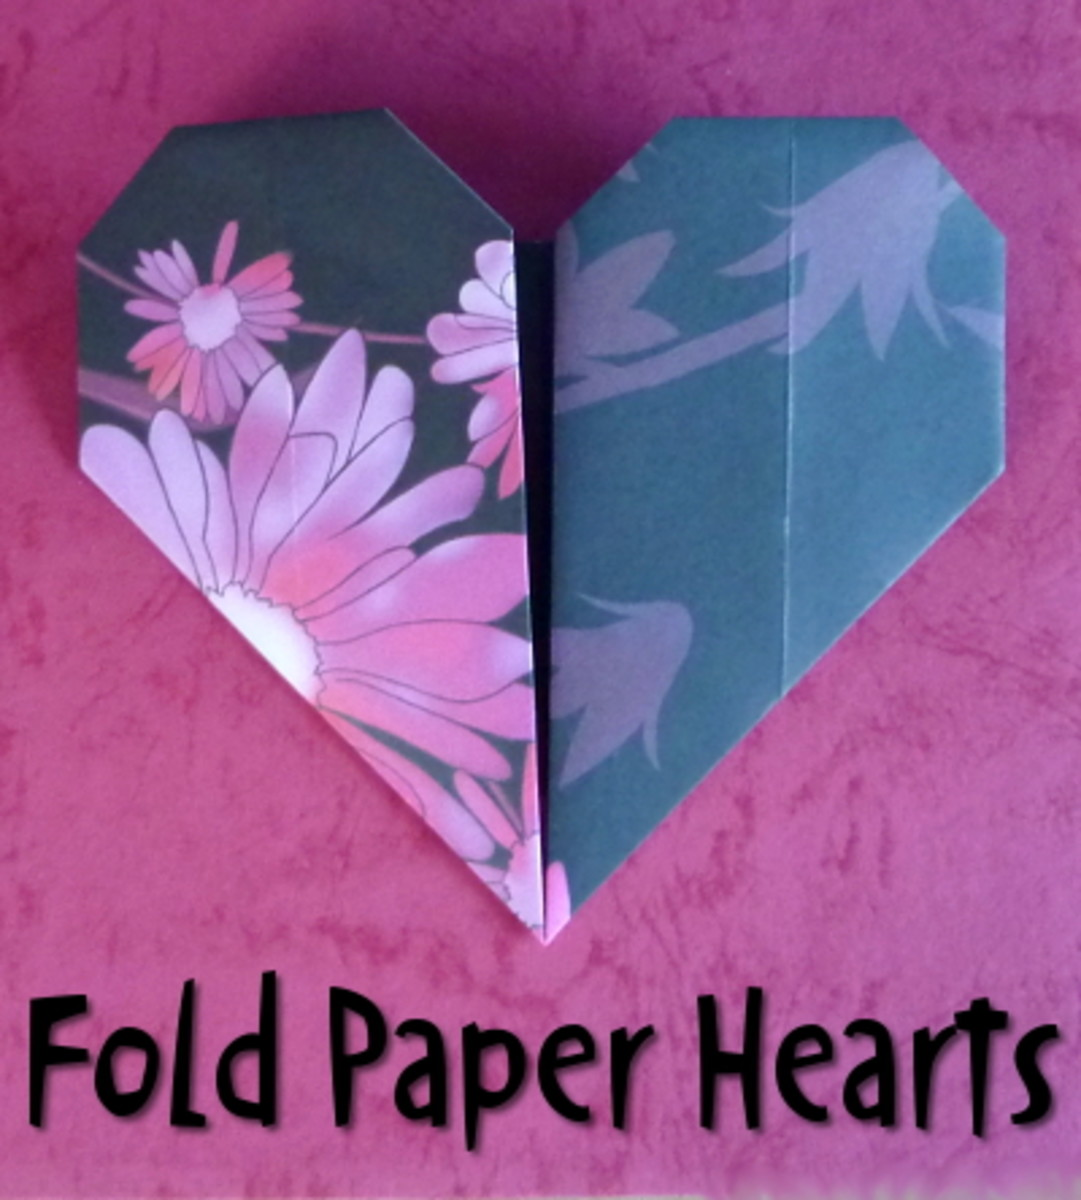 Make fast heart shapes from patterned papers